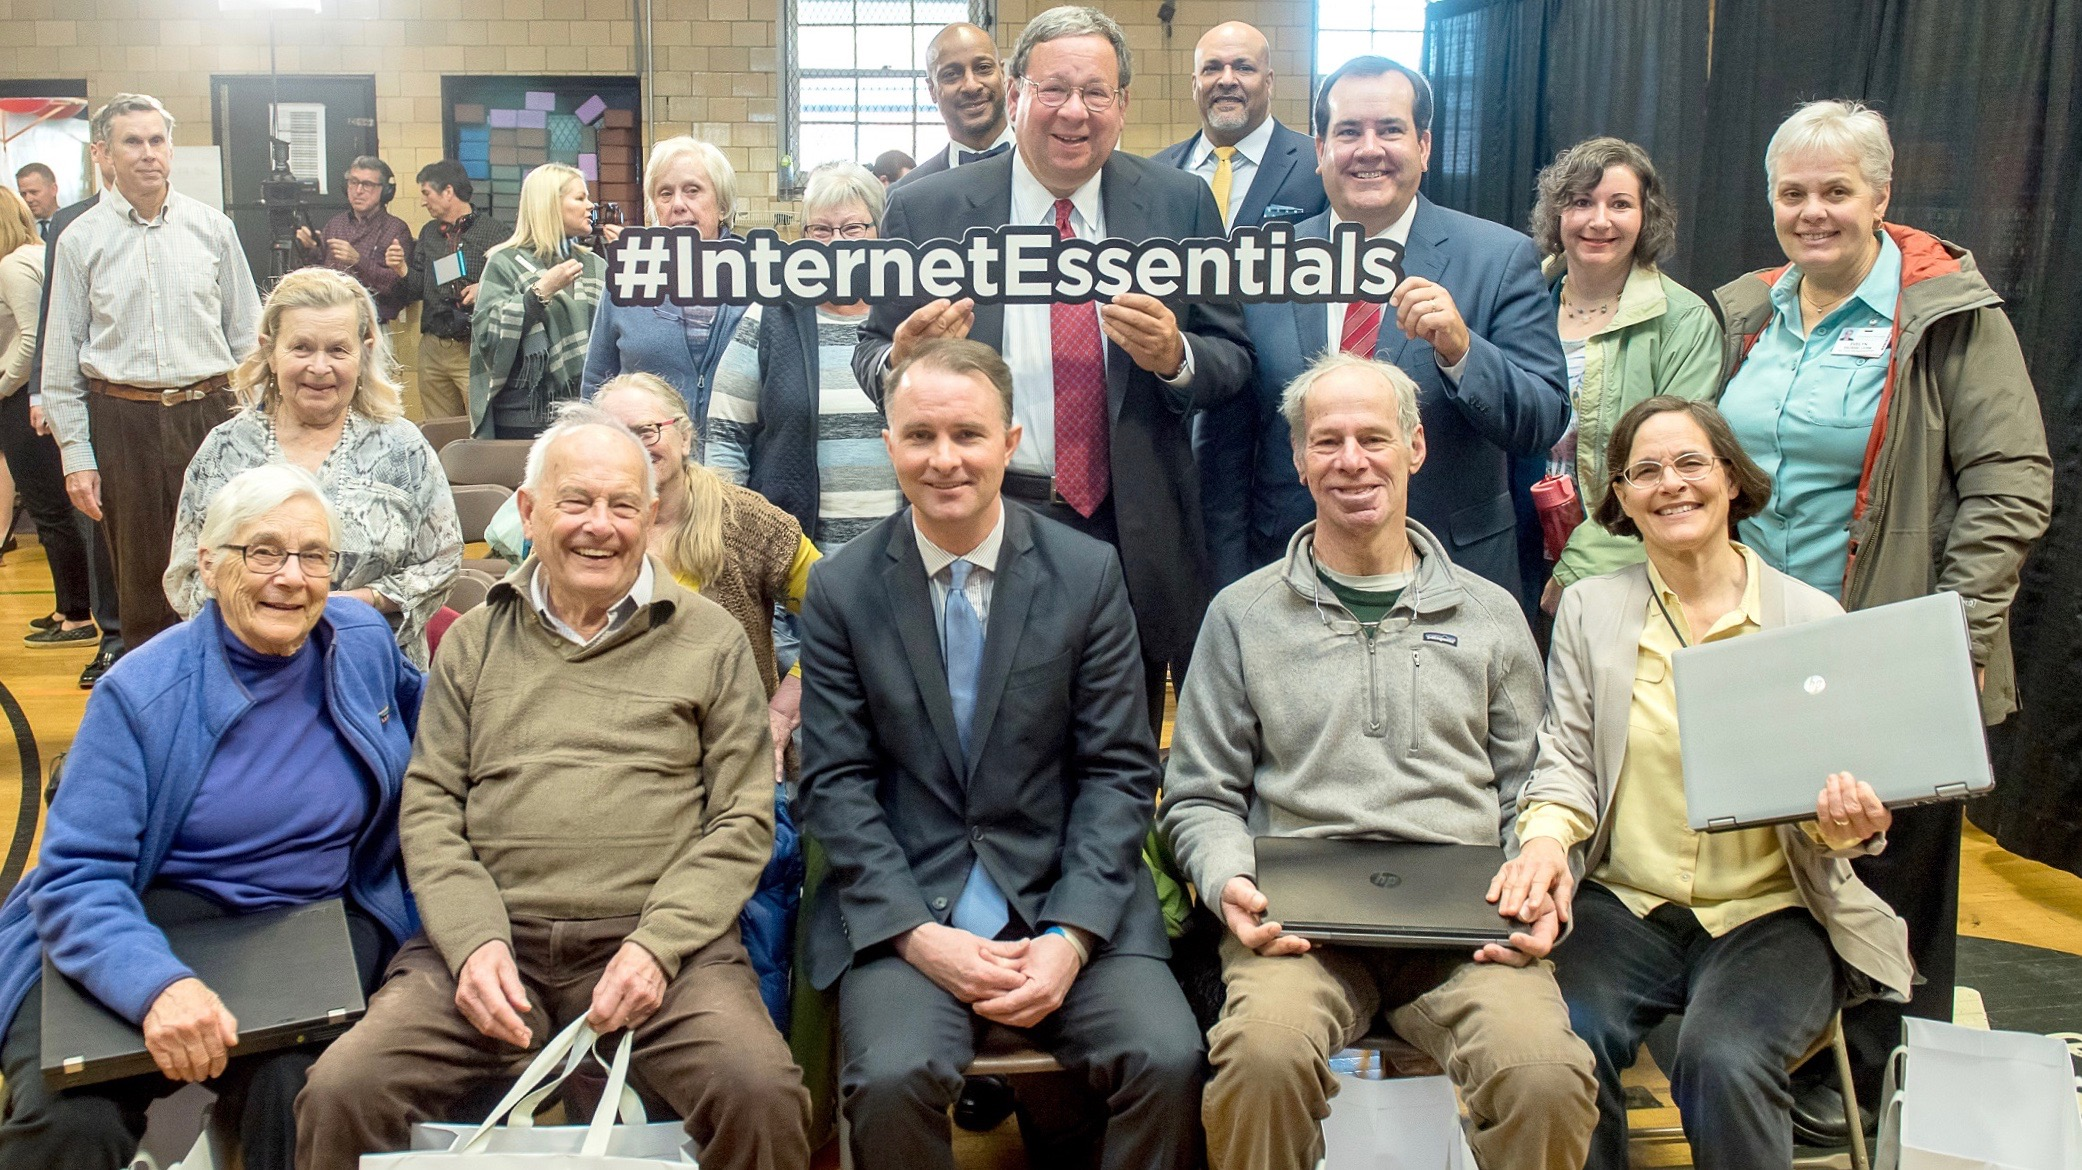 David L. Cohen, Comcast Corporation's Senior Executive Vice President and Chief Diversity Officer, stands with a group of senior Internet Essentials recipients.